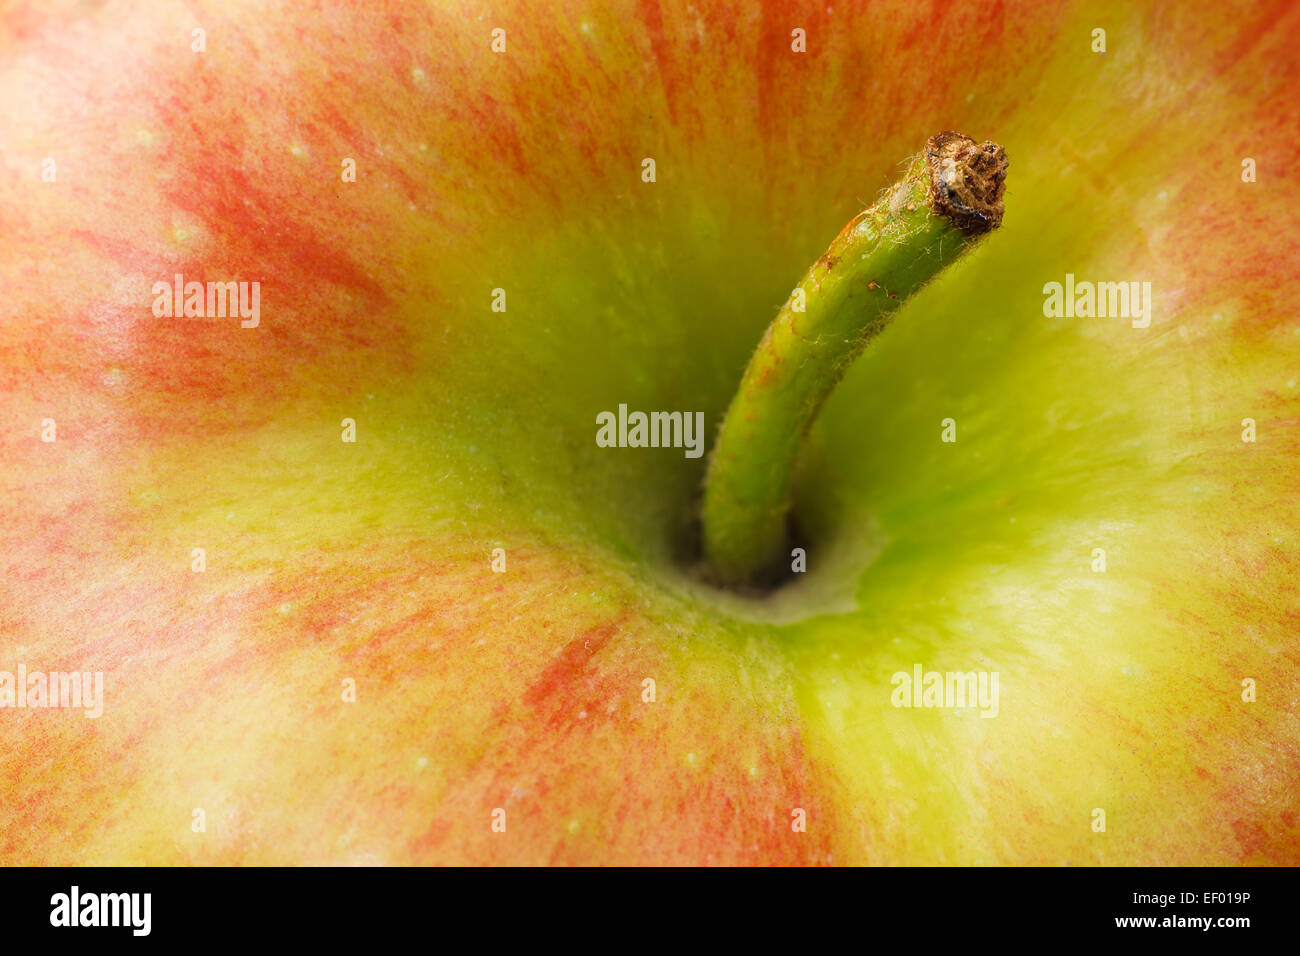 Detail of an apple. - Stock Image